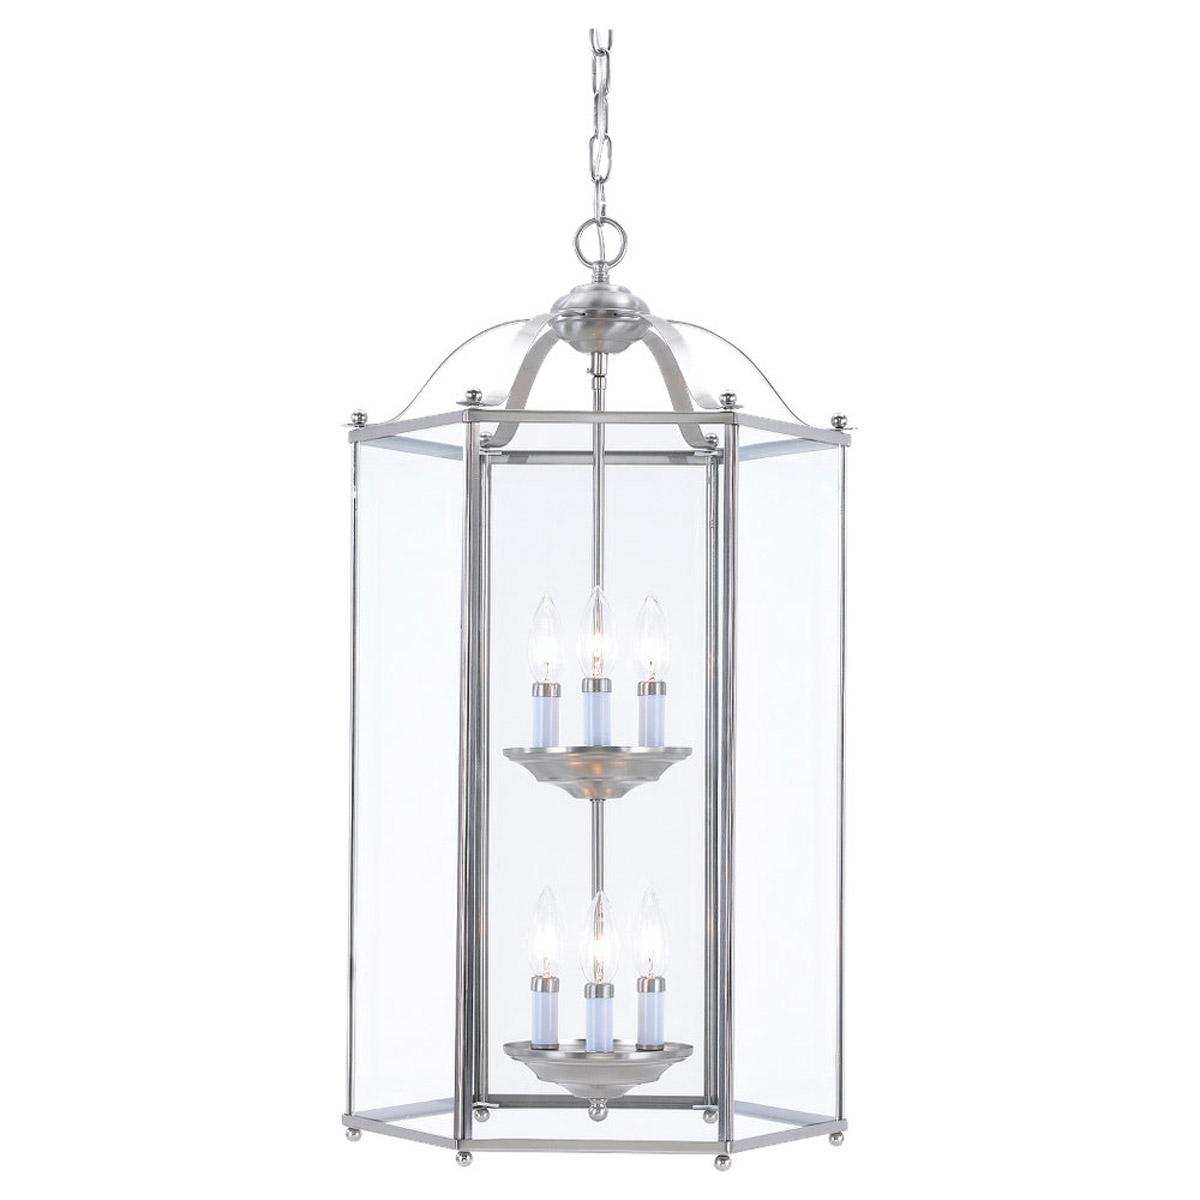 Sea Gull Lighting Bretton 6 Light Pendant in Brushed Nickel 5233-962